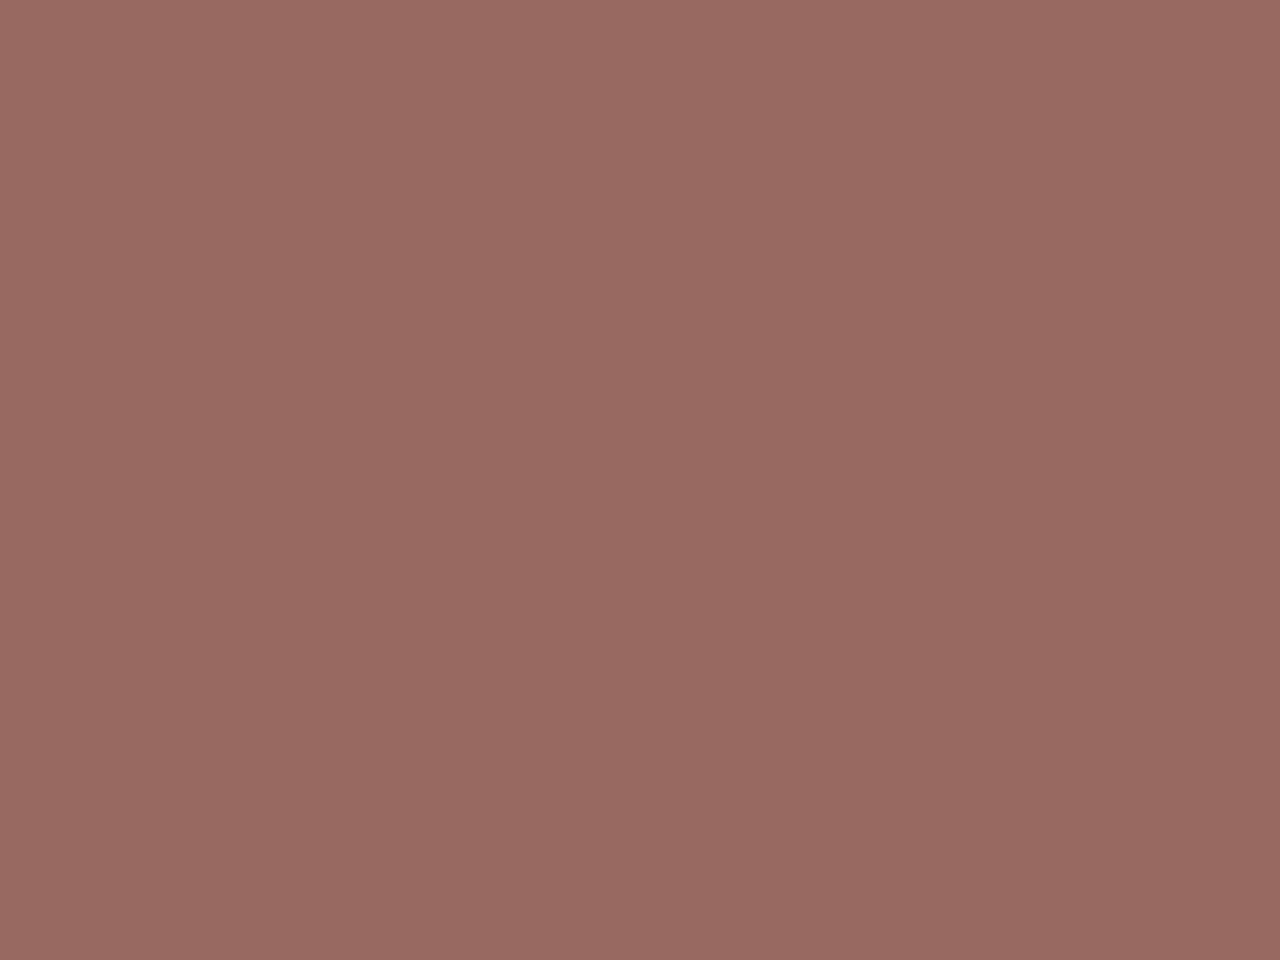 1280x960 Dark Chestnut Solid Color Background